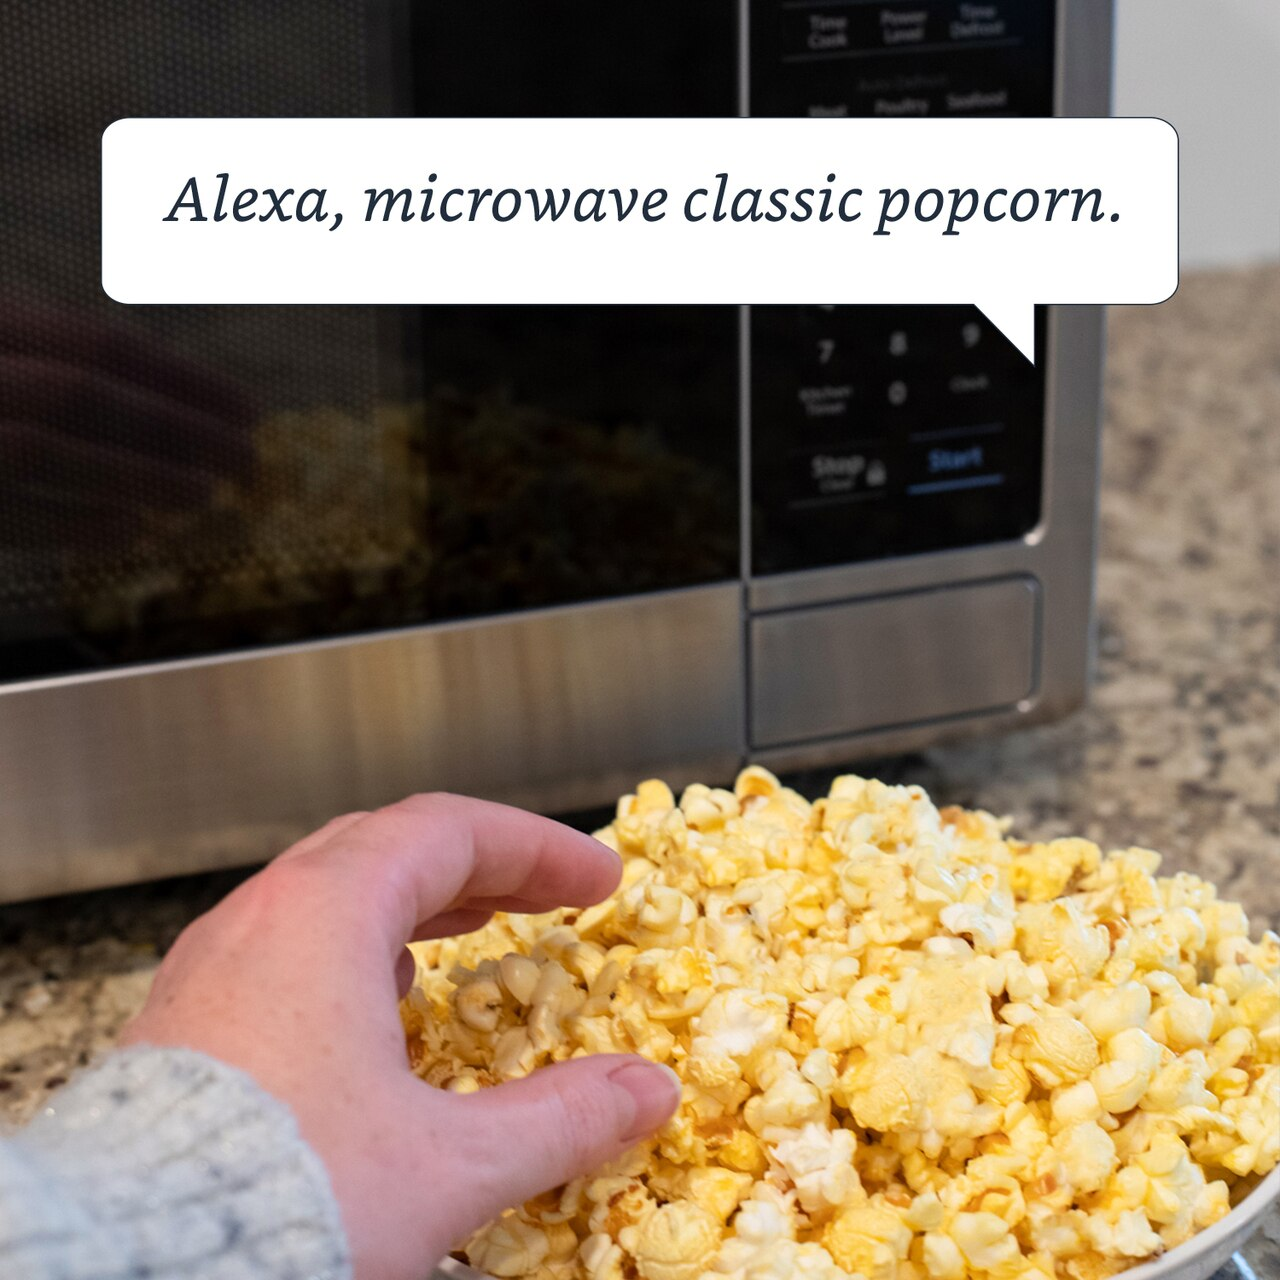 1.4 cu. ft. Sharp Stainless Steel Smart Microwave (SMC1449FS) – Alexa Microwave Popcorn Command